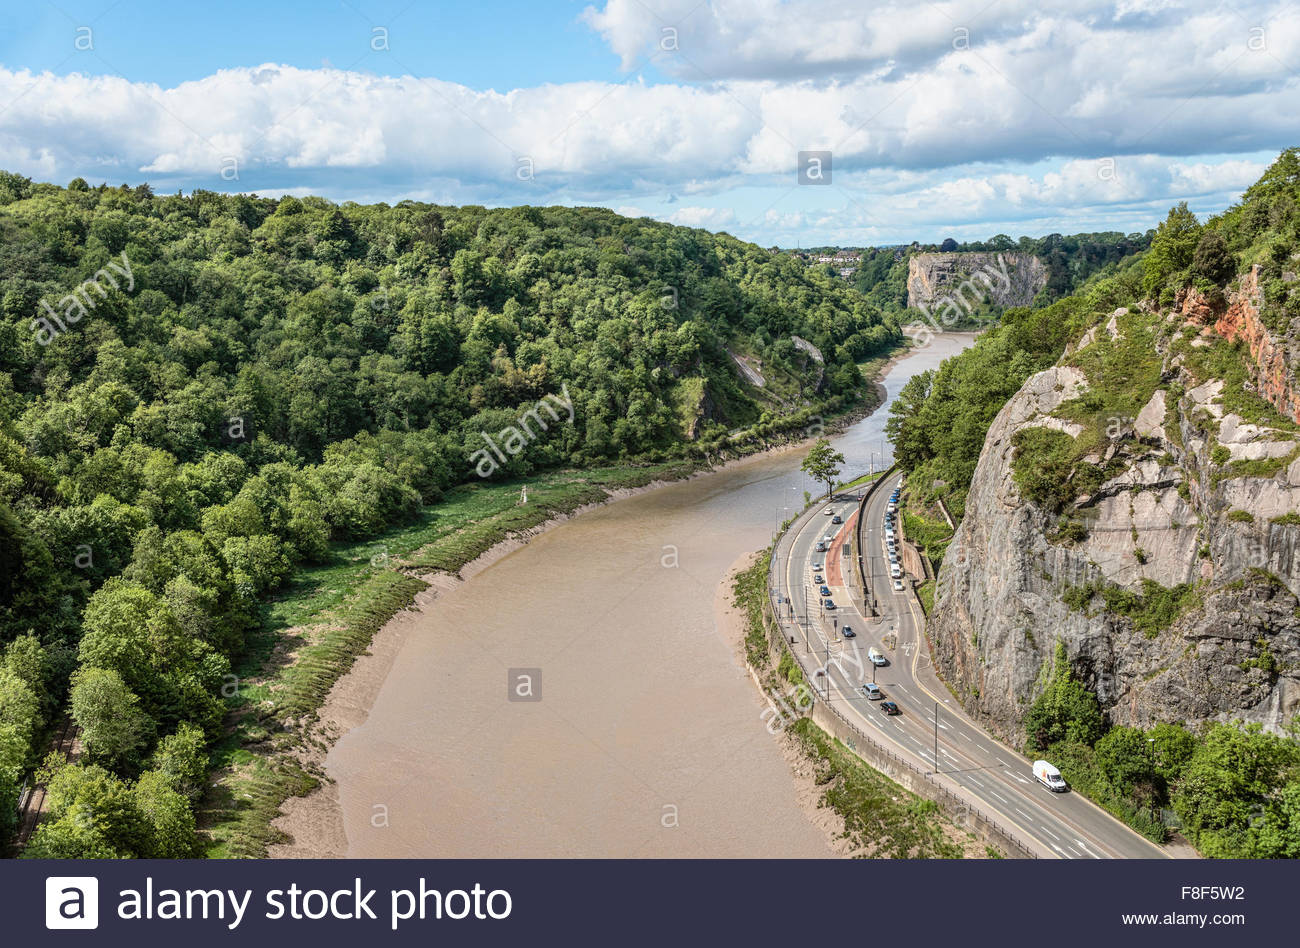 View from the Clifton Suspension Bridge into the Avon River Valley, Bristol, Somerset, England - Stock Image